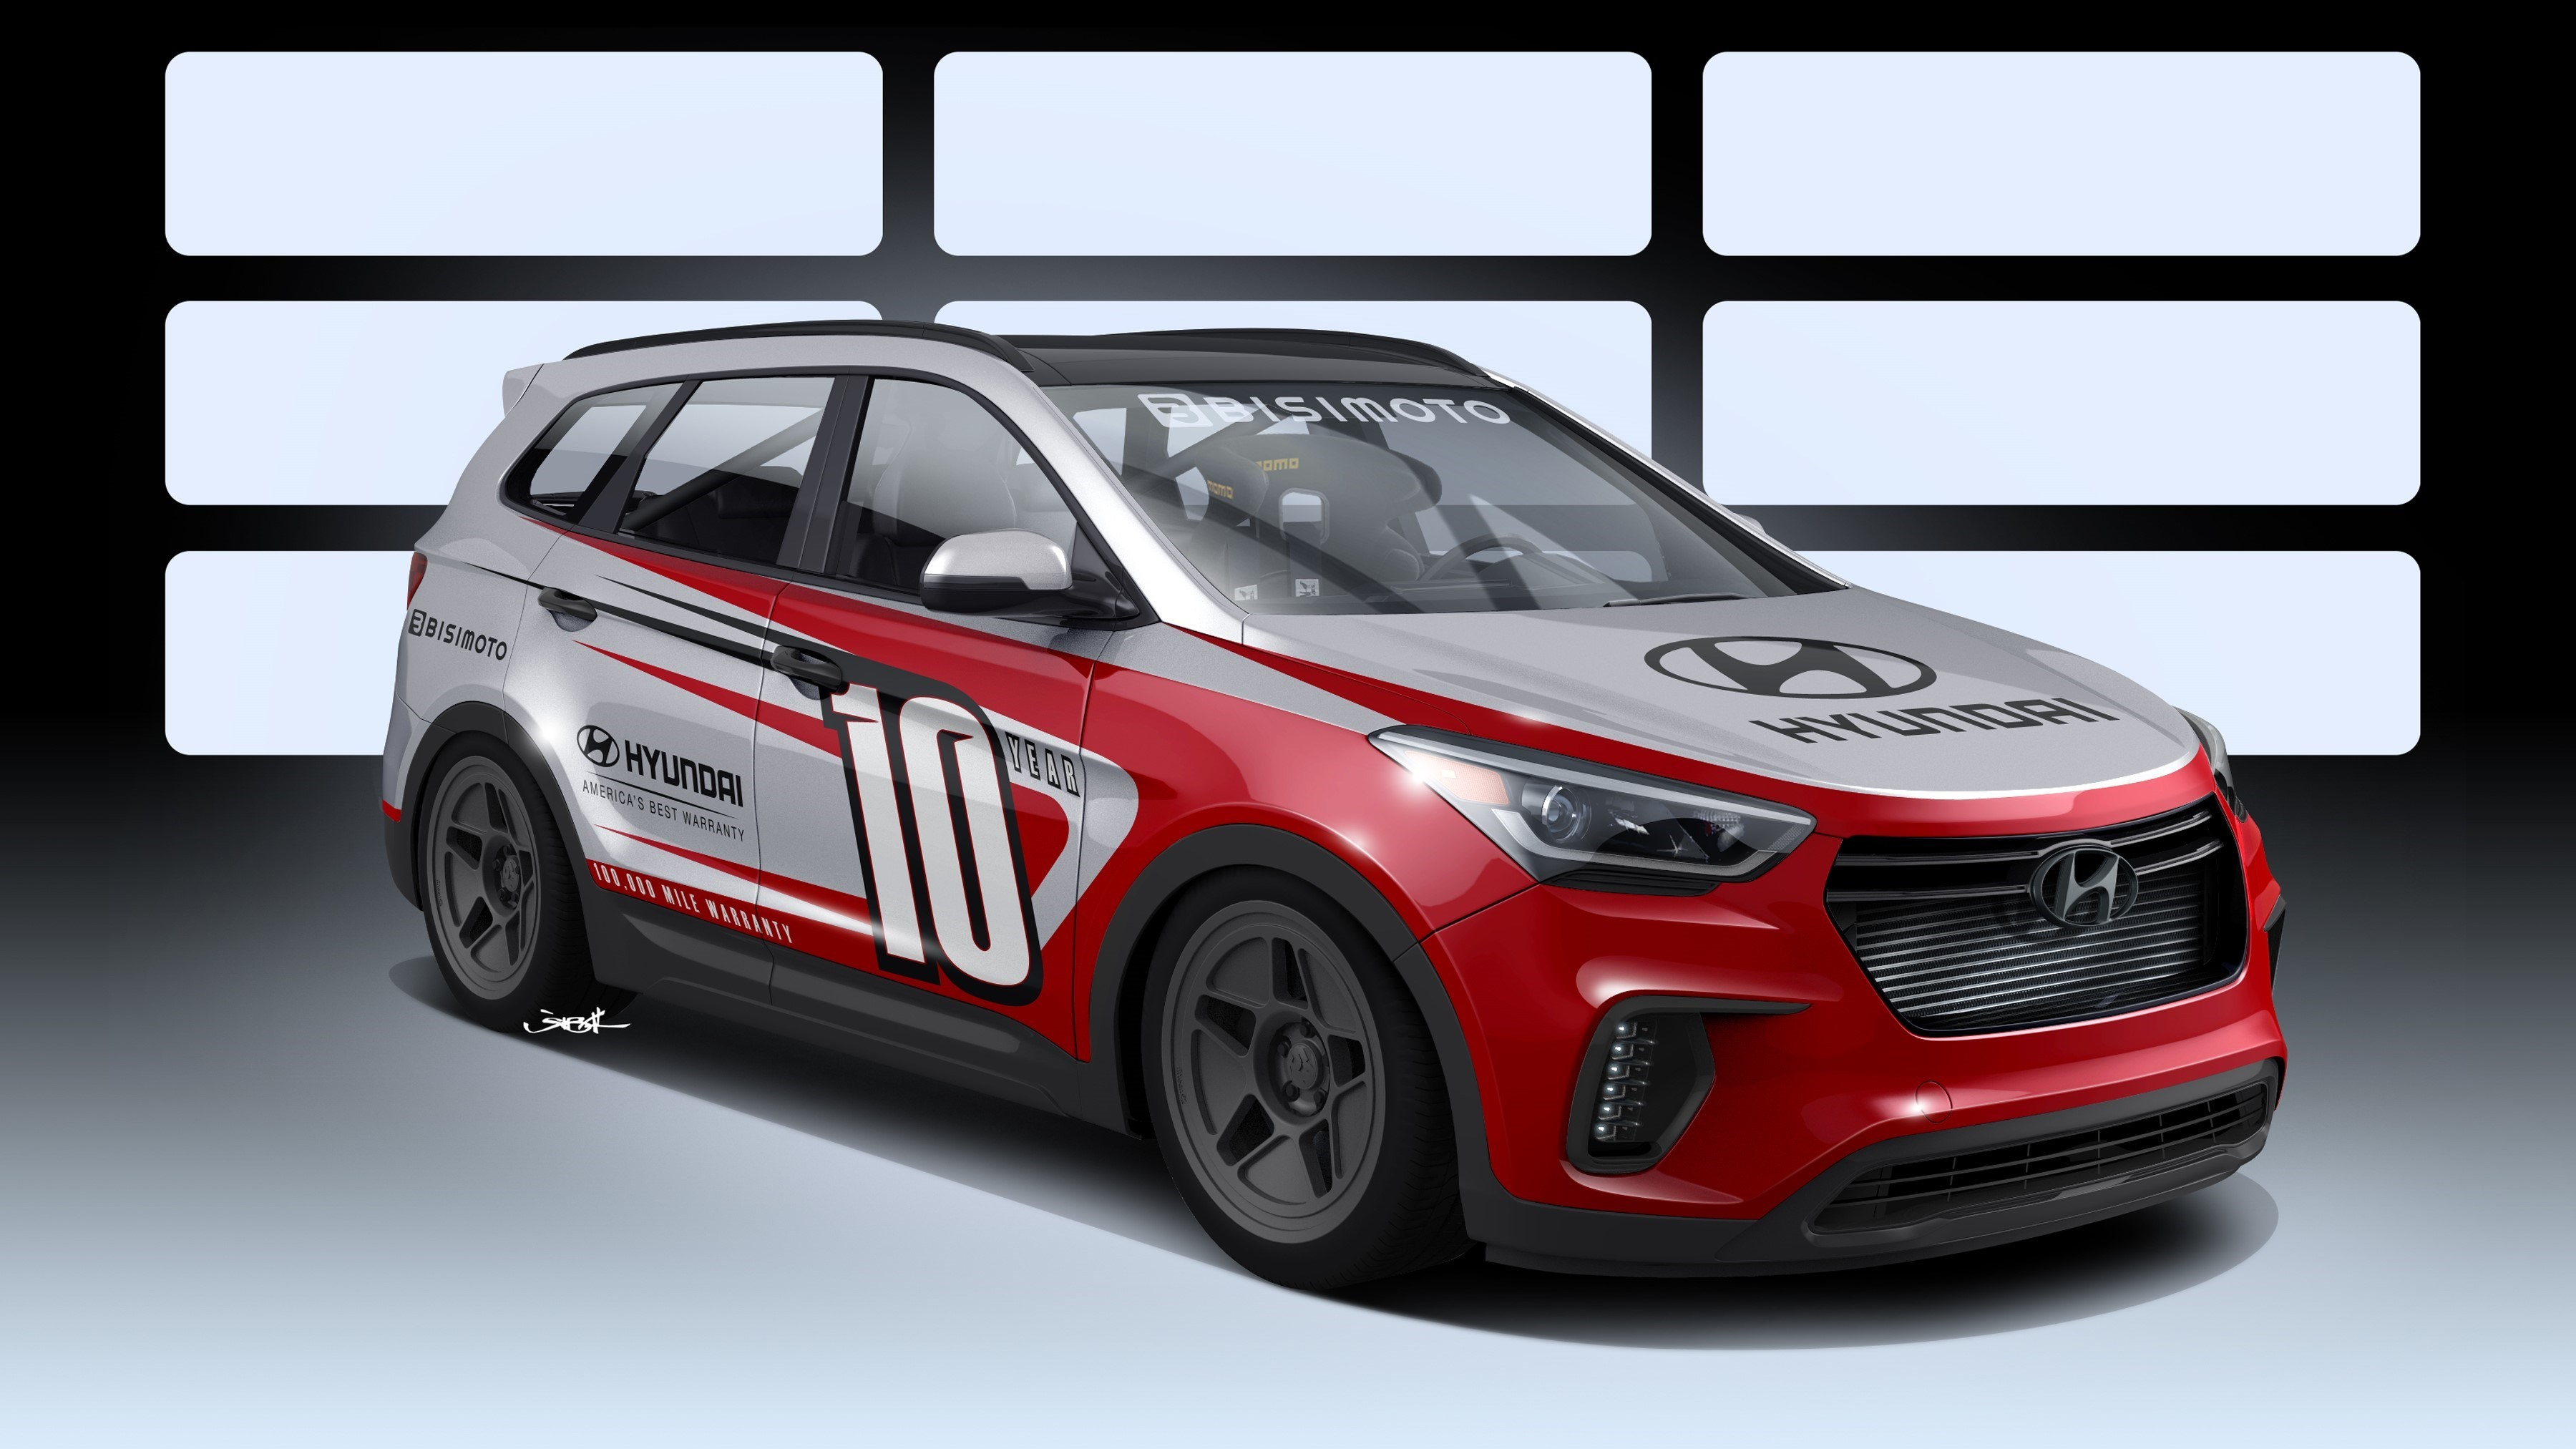 46171_HYUNDAI_JOINS_FORCES_WITH_BISIMOTO_TO_DEVELOP_SANTA_FAST_1_040_HORSEPOWER_cr